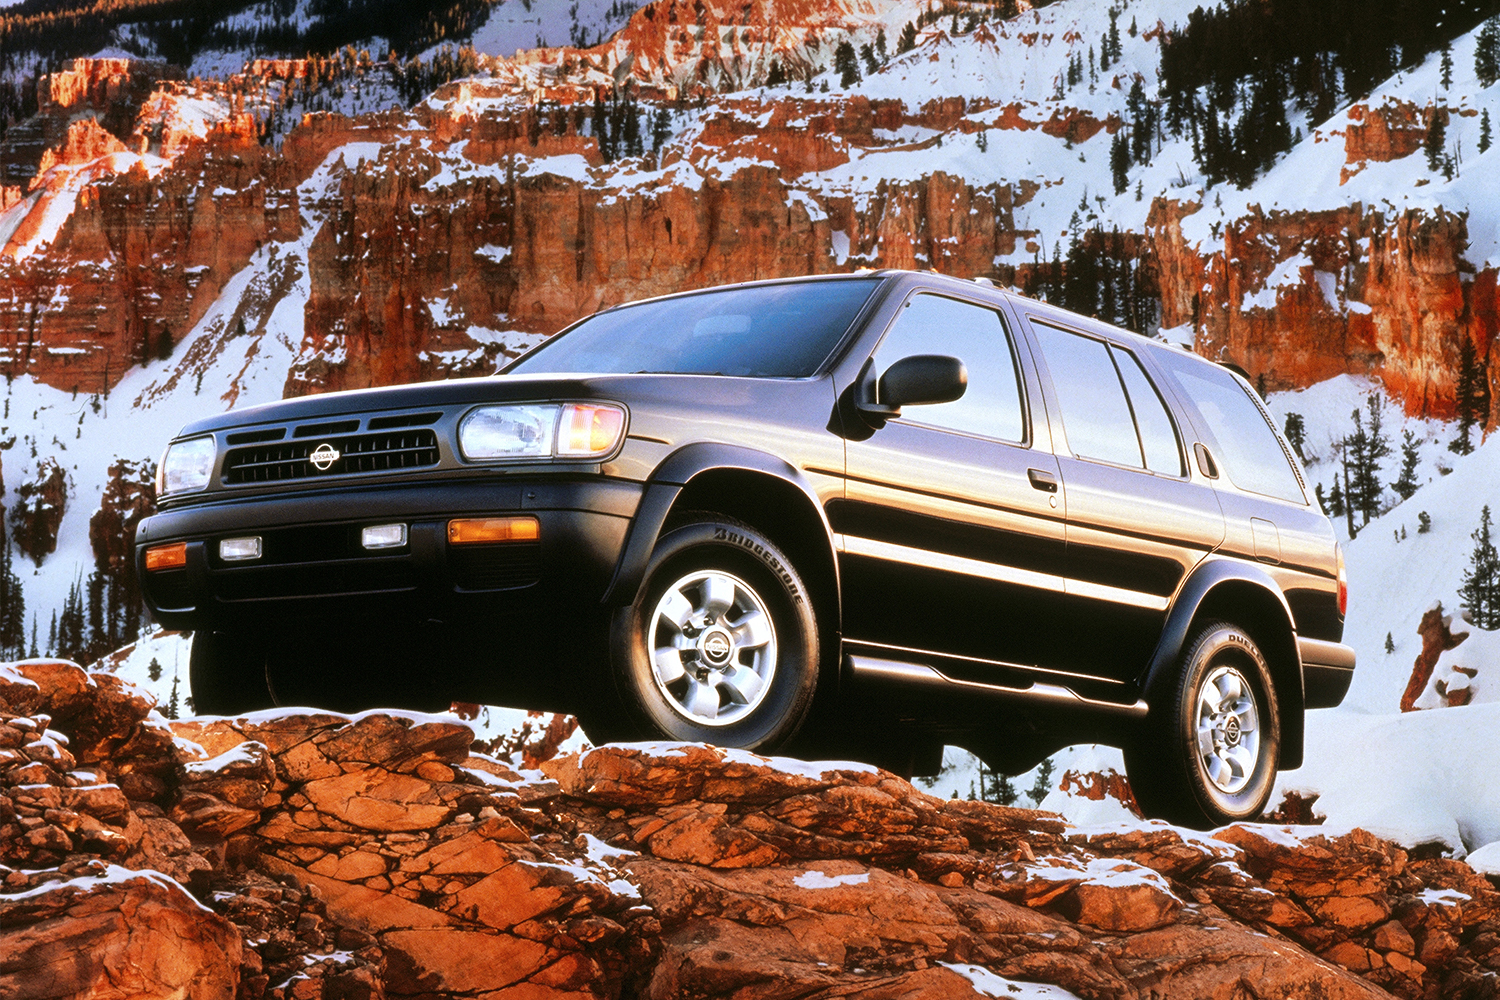 A 1997 Nissan Pathfinder SUV perched on a mountain with snow covered rock in the background in a vintage photo